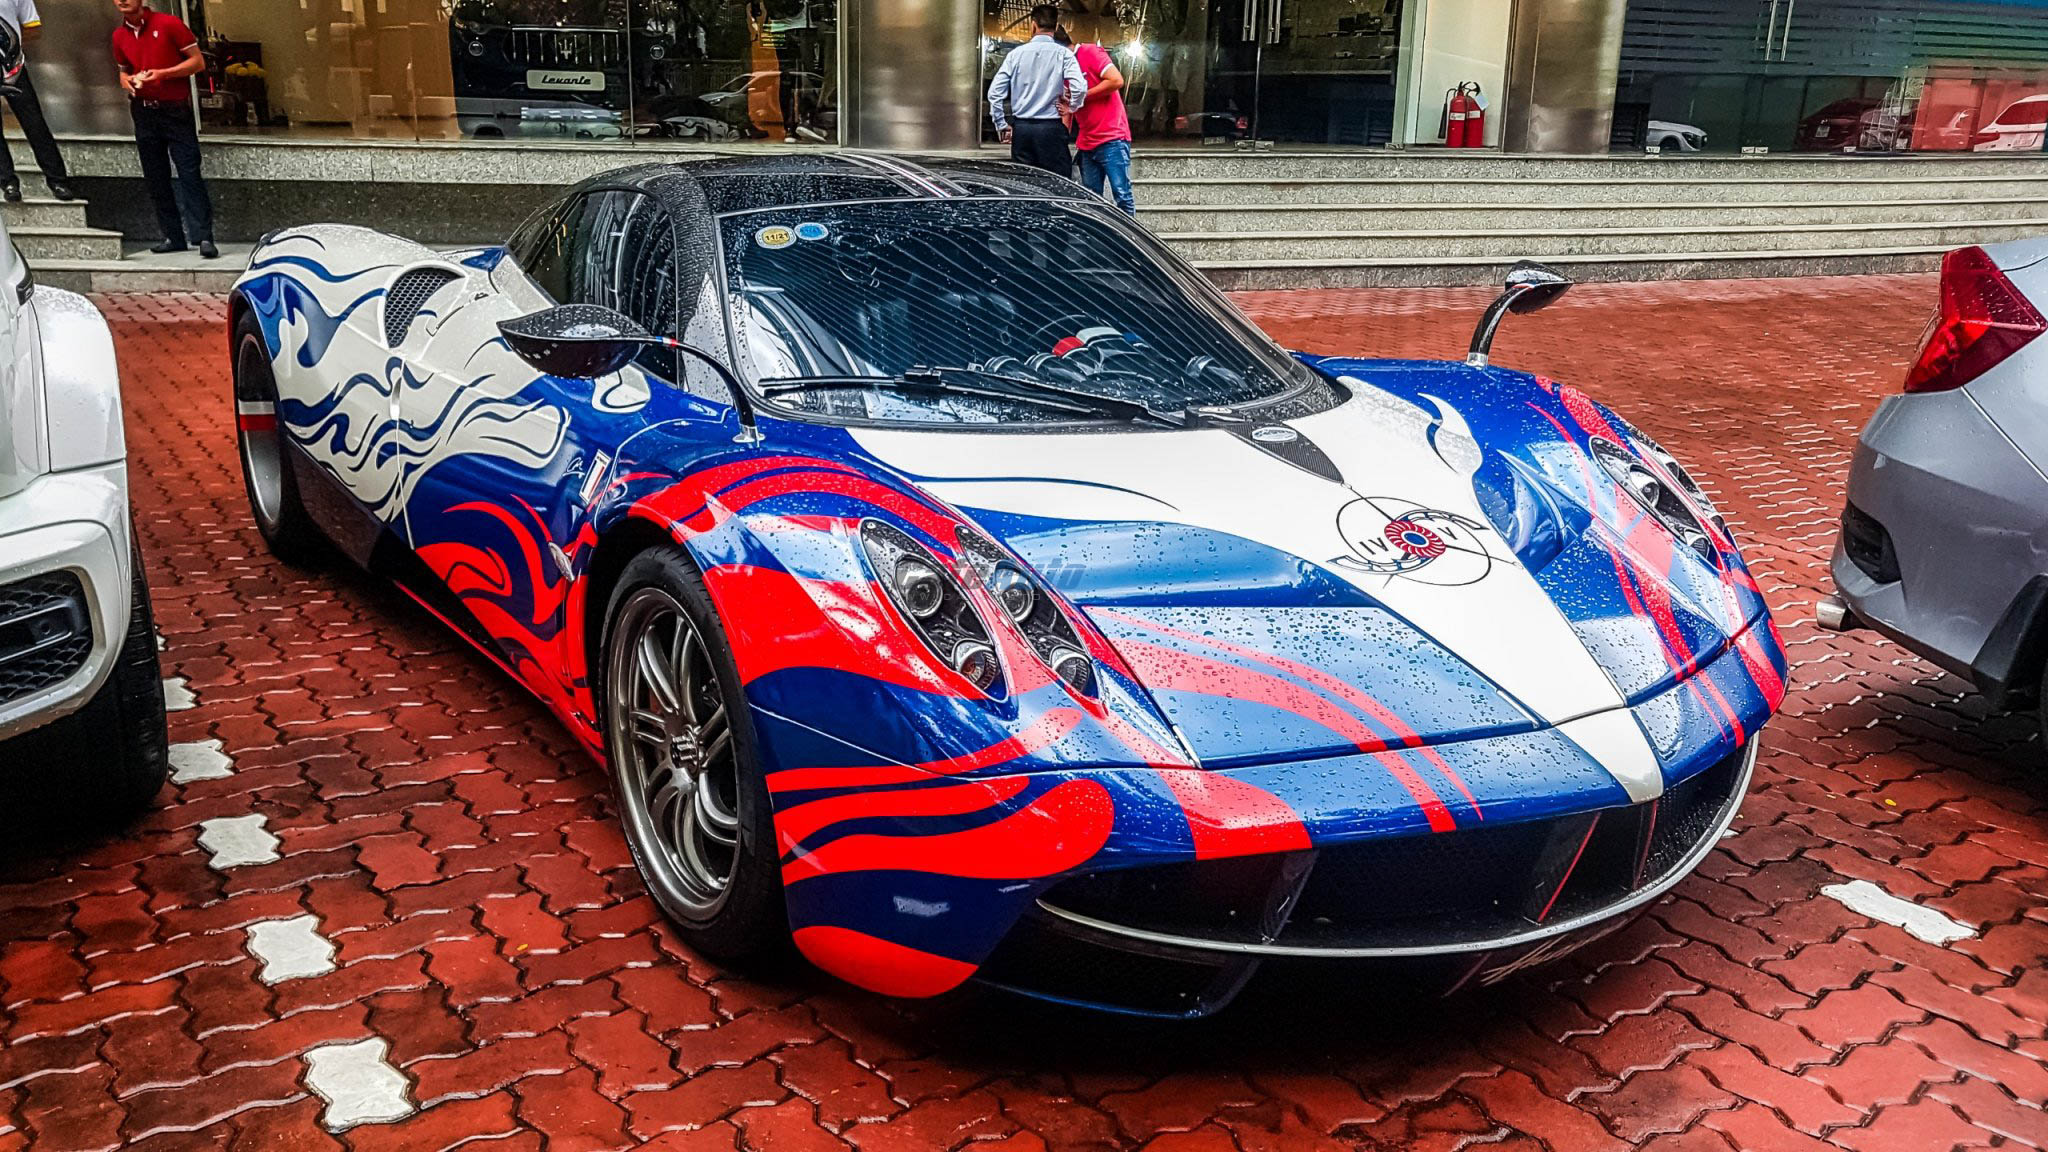 paganihuayra-cafeautovn-1